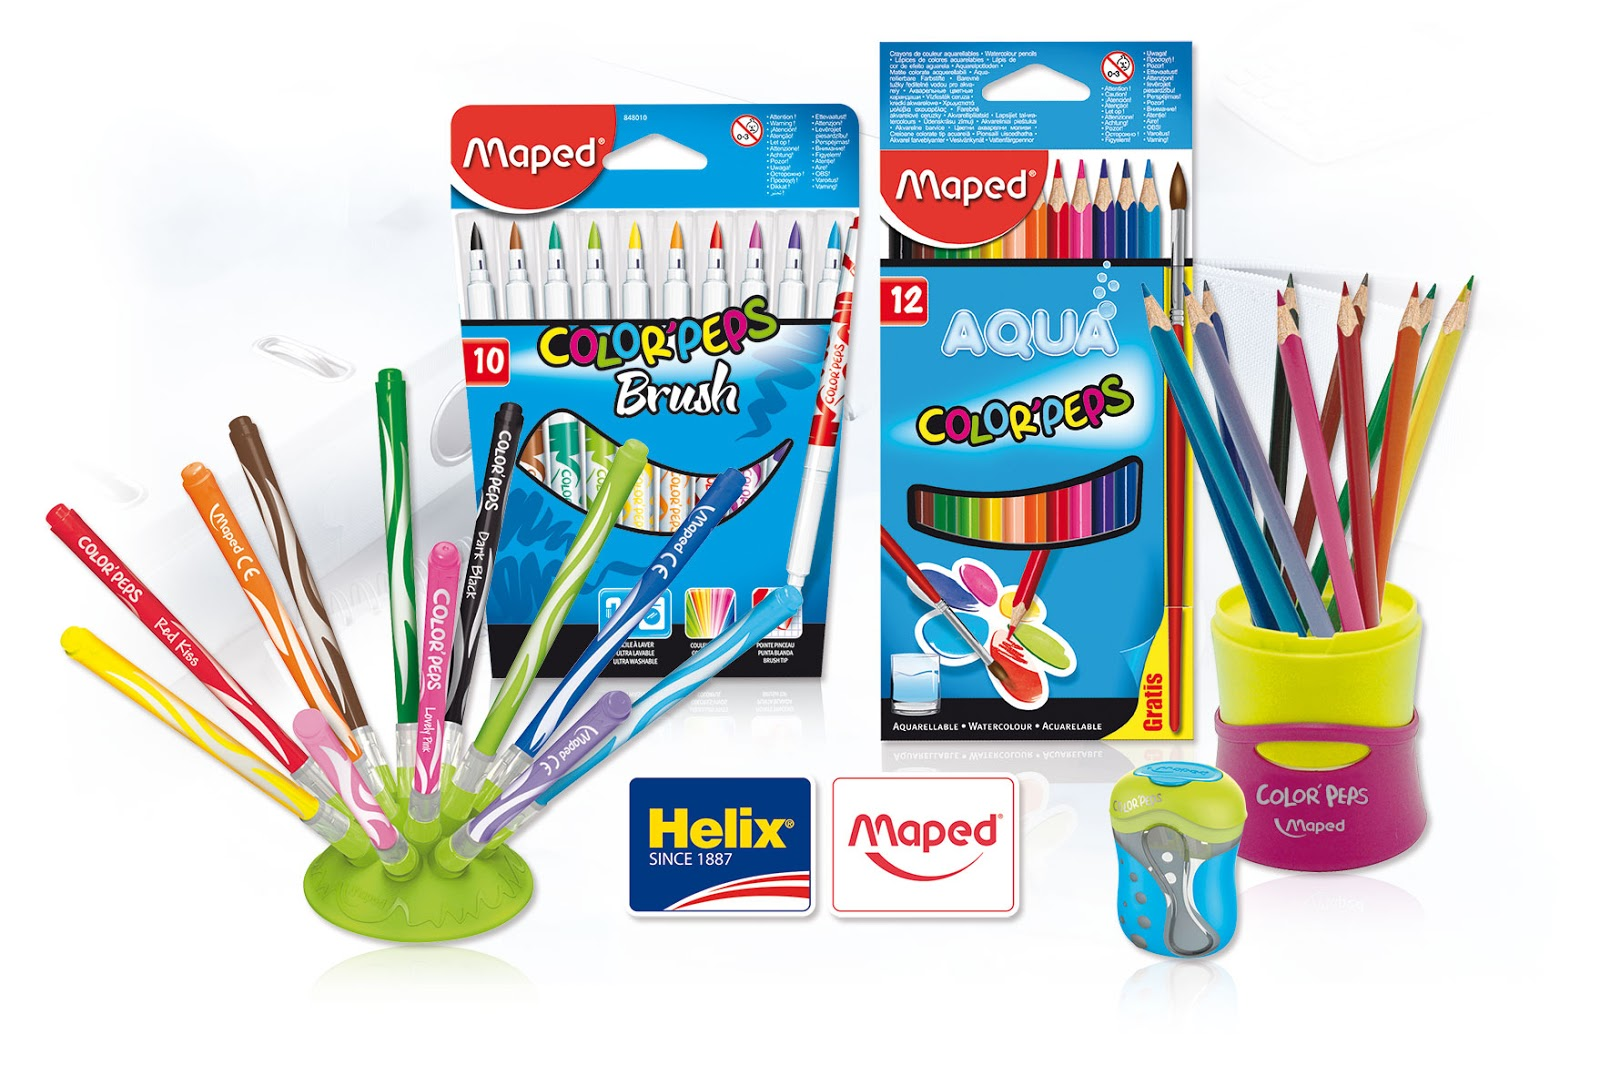 Maped Helix Stationery Products - giveaway - motherdistracted.co.uk